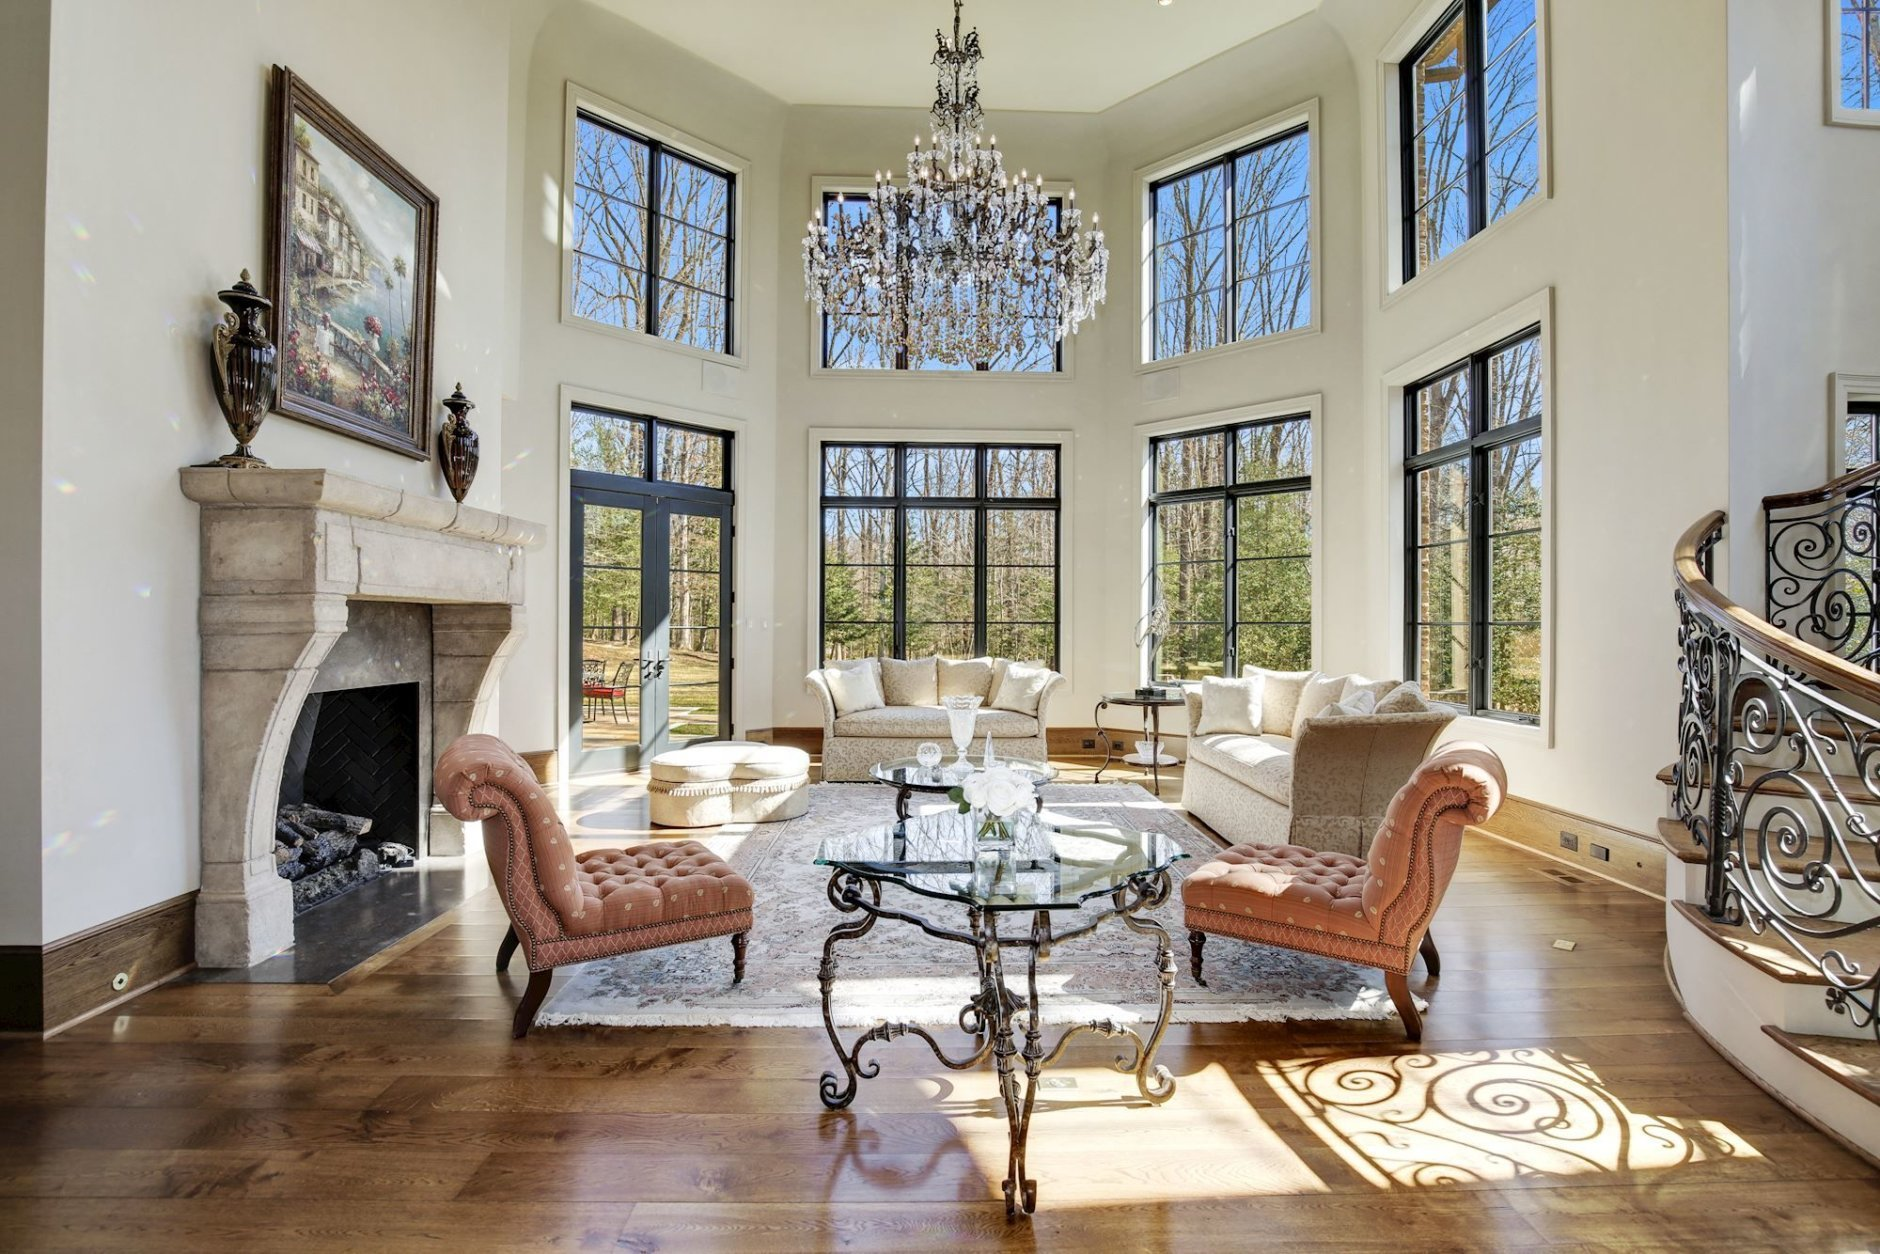 Tammy Darvish's Potomac, Maryland, home is on the market for nearly $6 million. (Courtesy Washington Fine Properties)